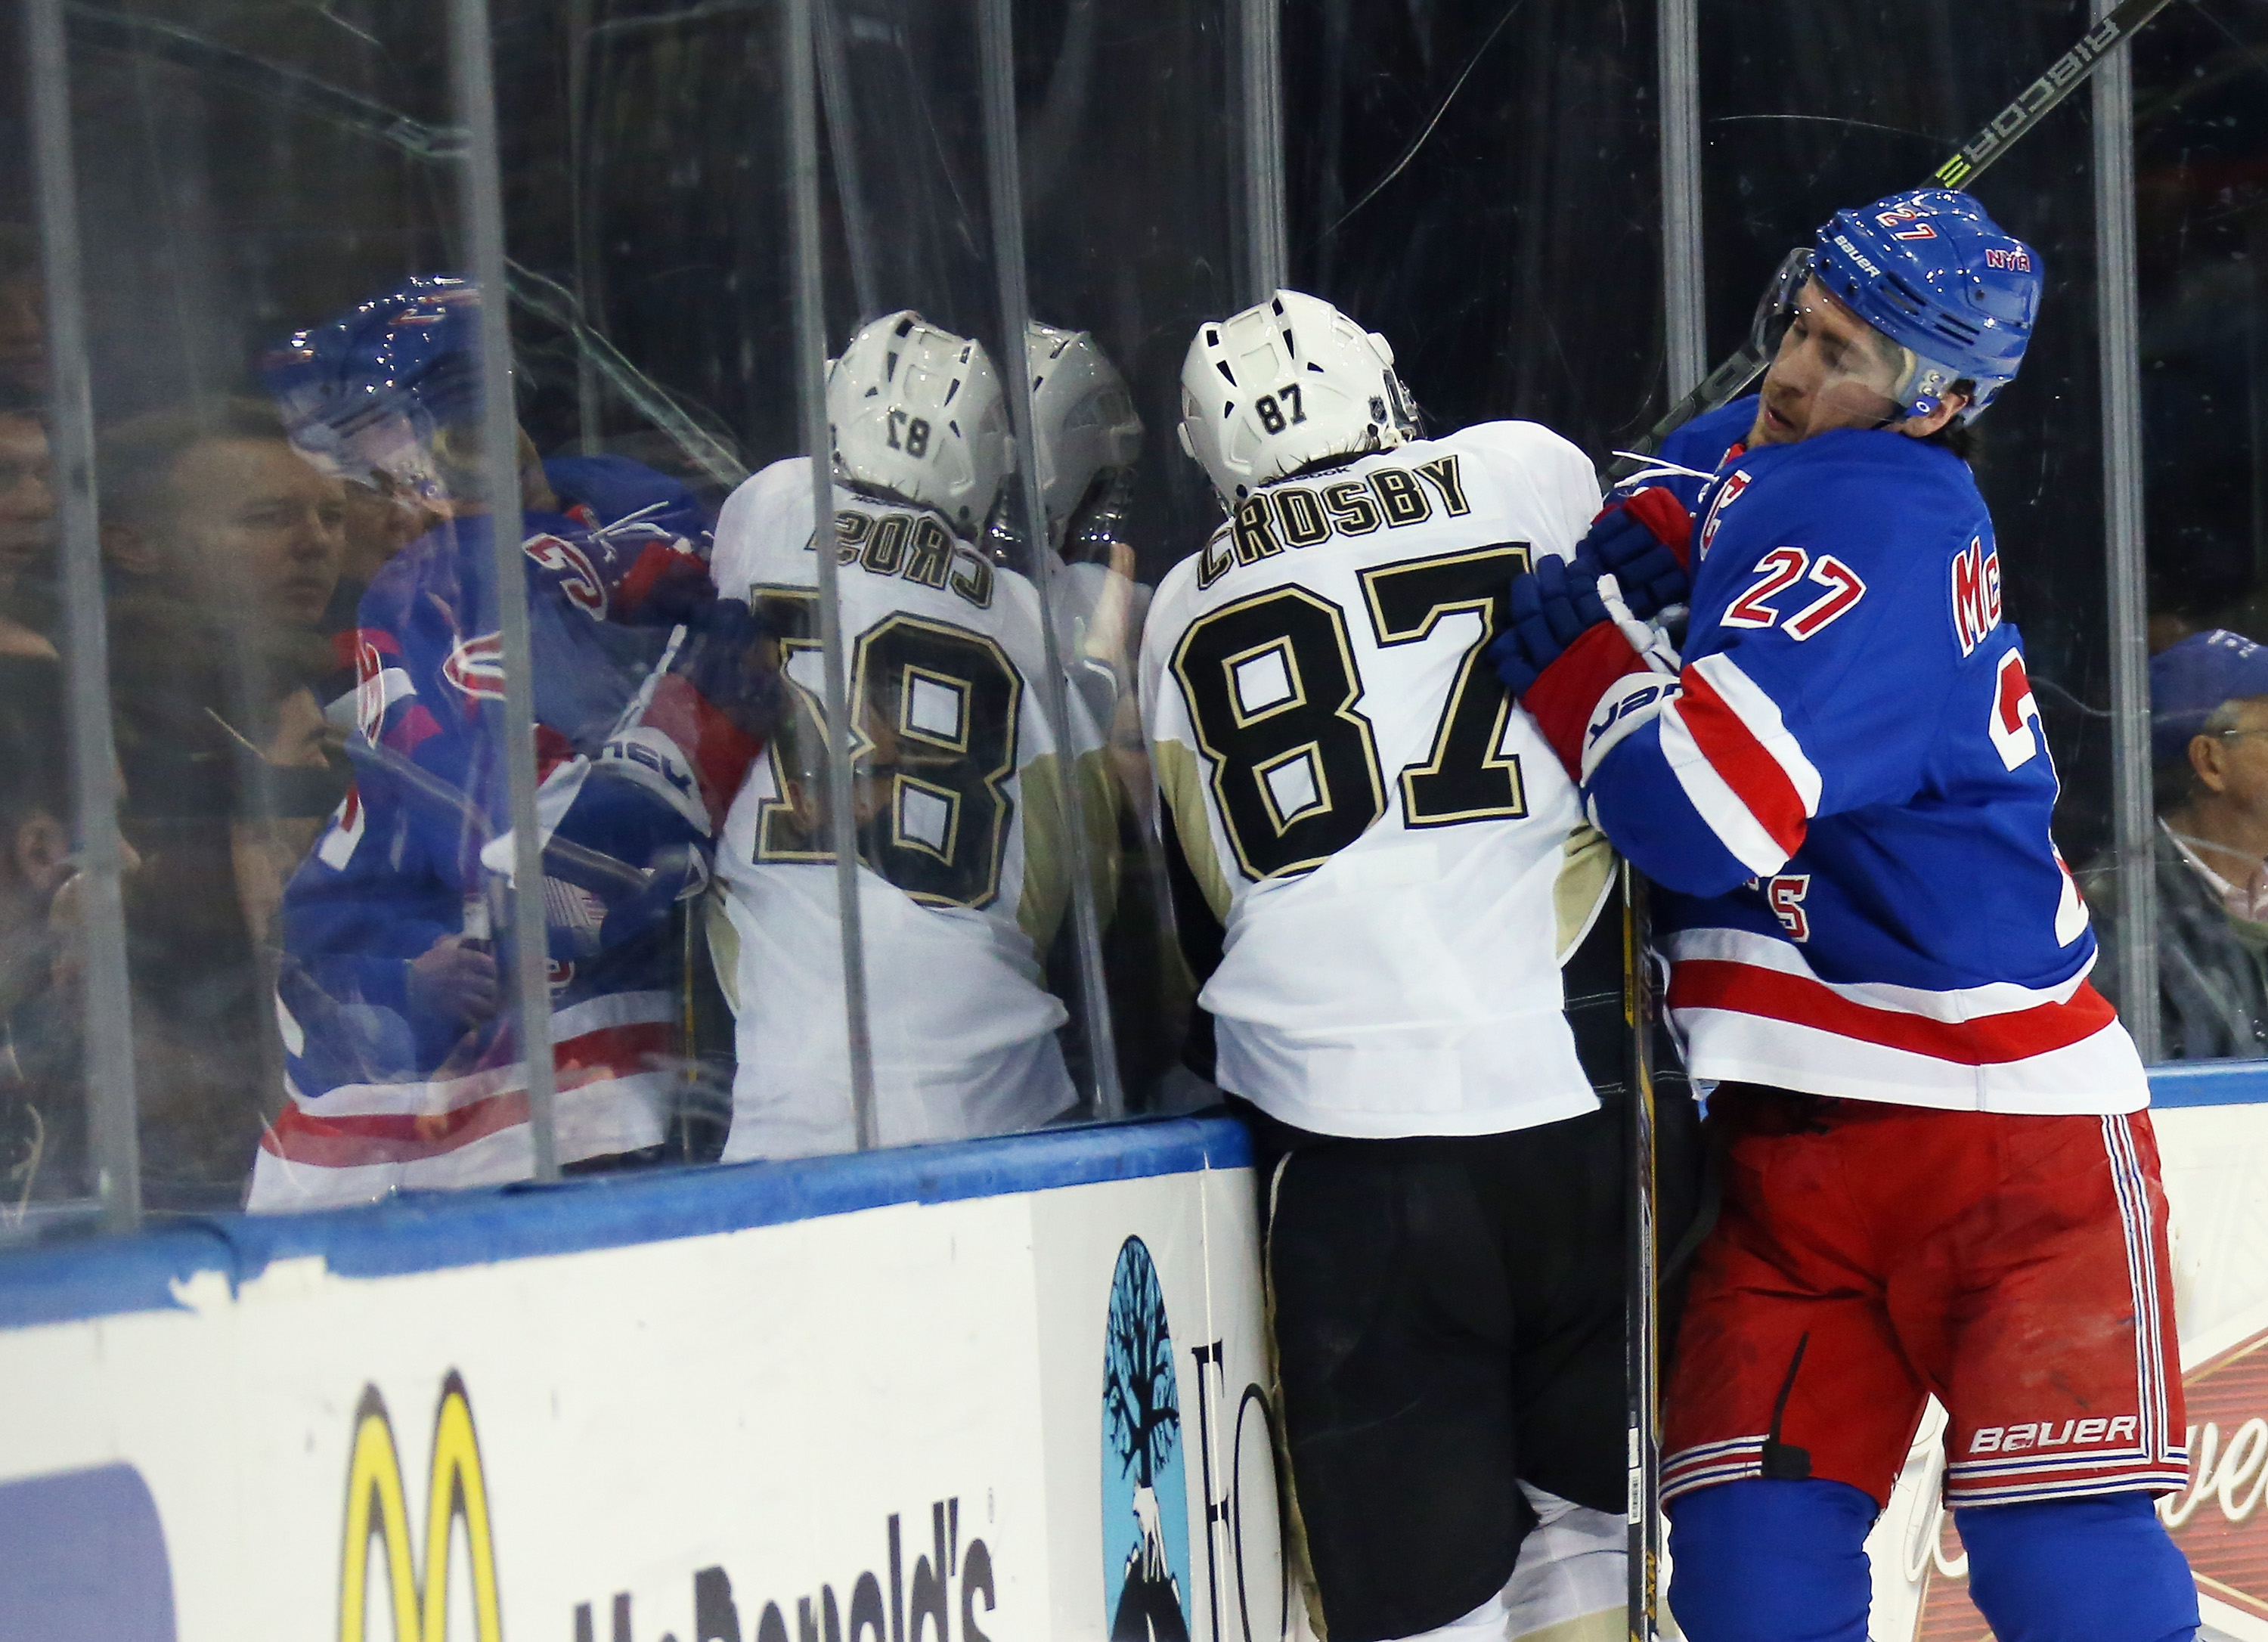 2015 NHL playoff scores: Crosby, Penguins eliminated as Rangers advance